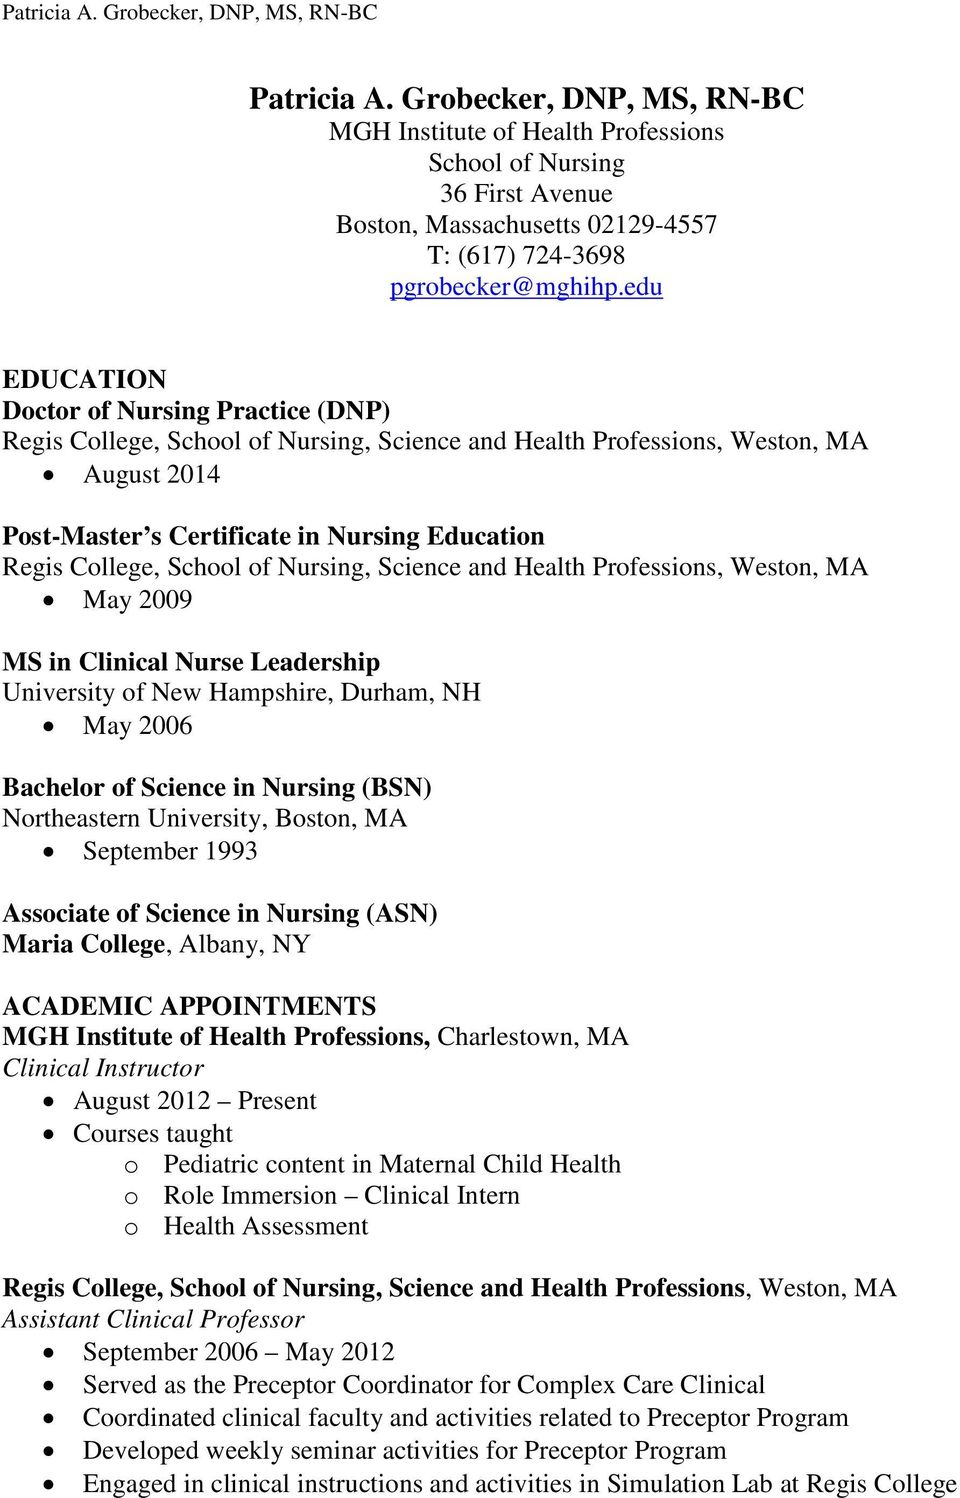 Bachelor of Science in Nursing (BSN) Northeastern University, Boston, MA September 1993 Associate of Science in Nursing (ASN) Maria College, Albany, NY ACADEMIC APPOINTMENTS MGH Institute of Health